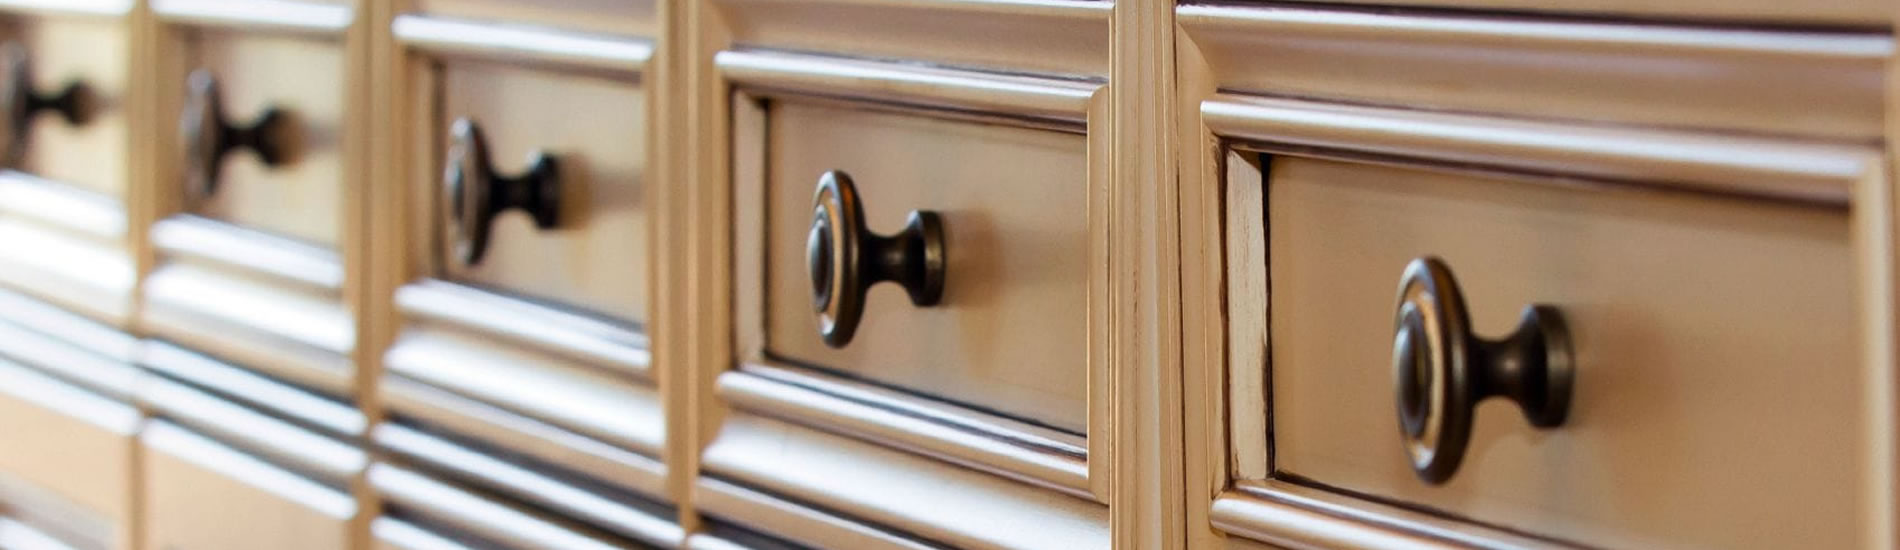 Decorative Furniture Hardware